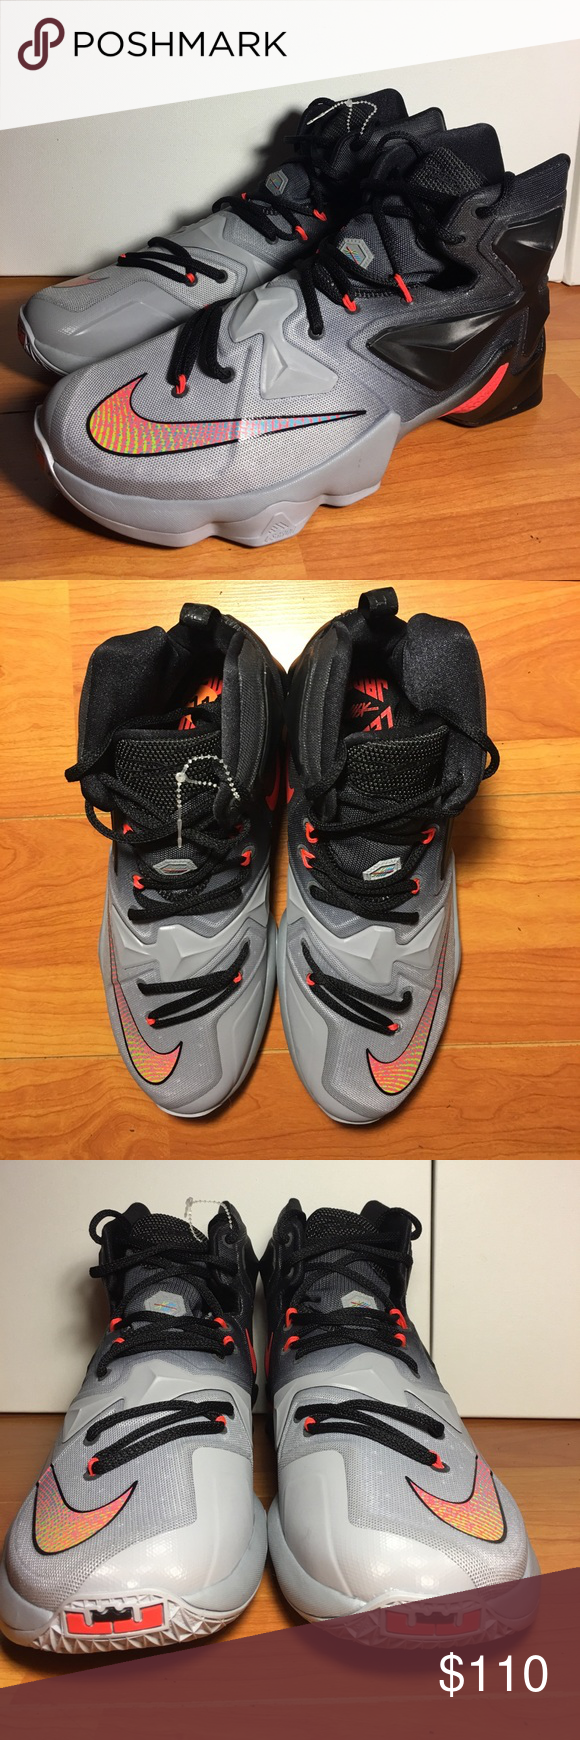 best service 74168 2902f NWTNike LeBron 13 is dressed in a Wolf Grey NWTNike LeBron 13 is dressed in  a Wolf Grey, Black, Bright Crimson, Volt and Reflect Silver color scheme.